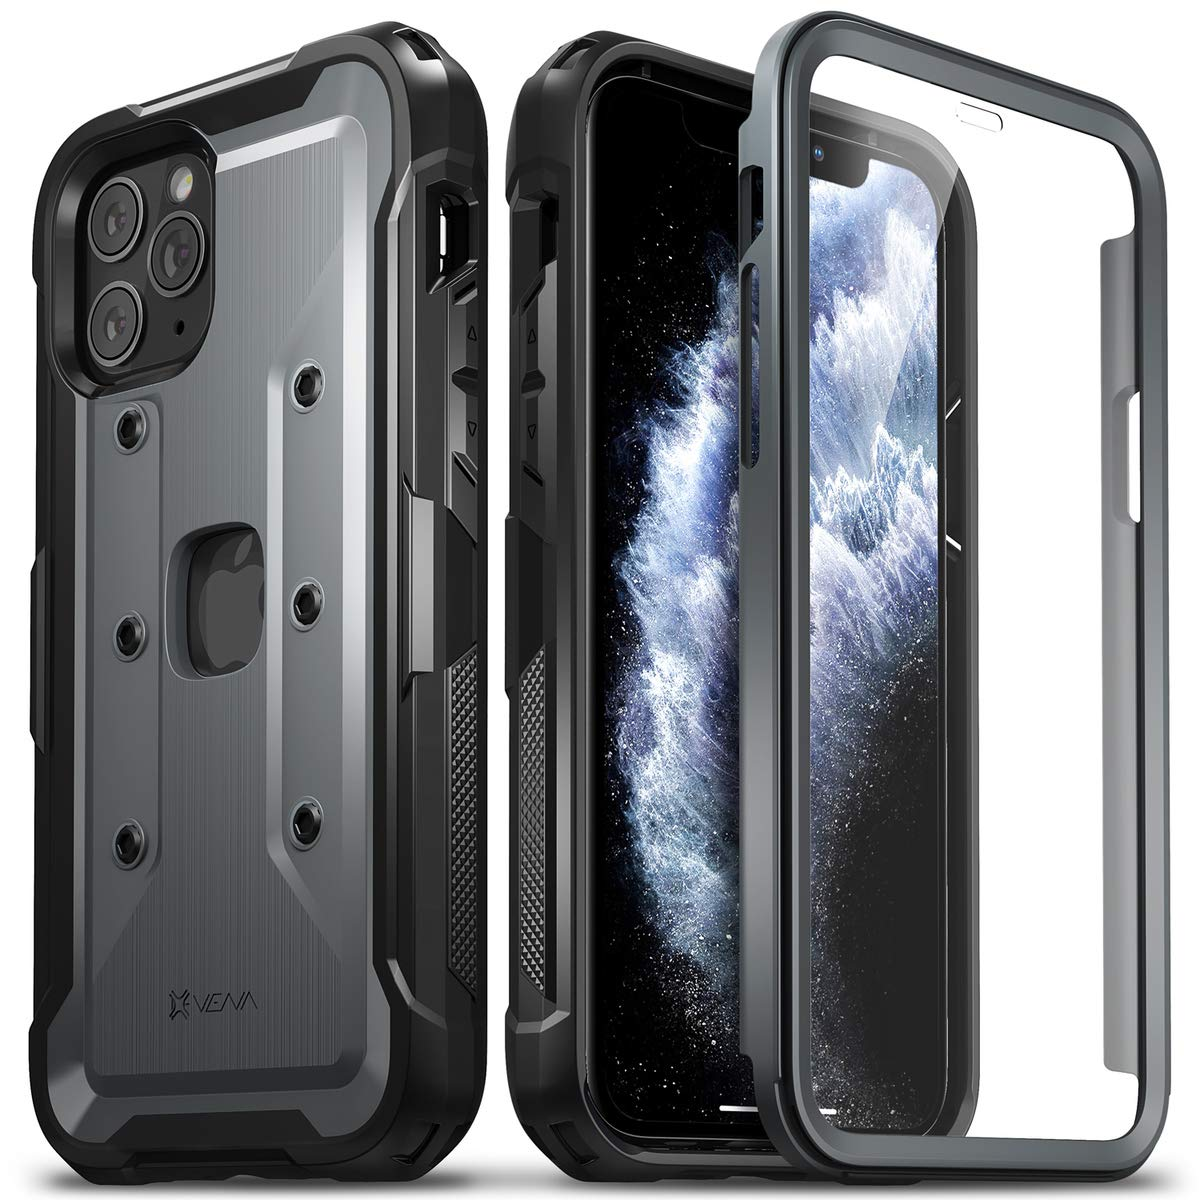 Vena iPhone 11 Pro Full Body Case, vArmor Pro, Rugged Heavy Duty Case with Built-in Screen Protector, Designed for iPhone 11 Pro (5.8 inches) - Space Gray